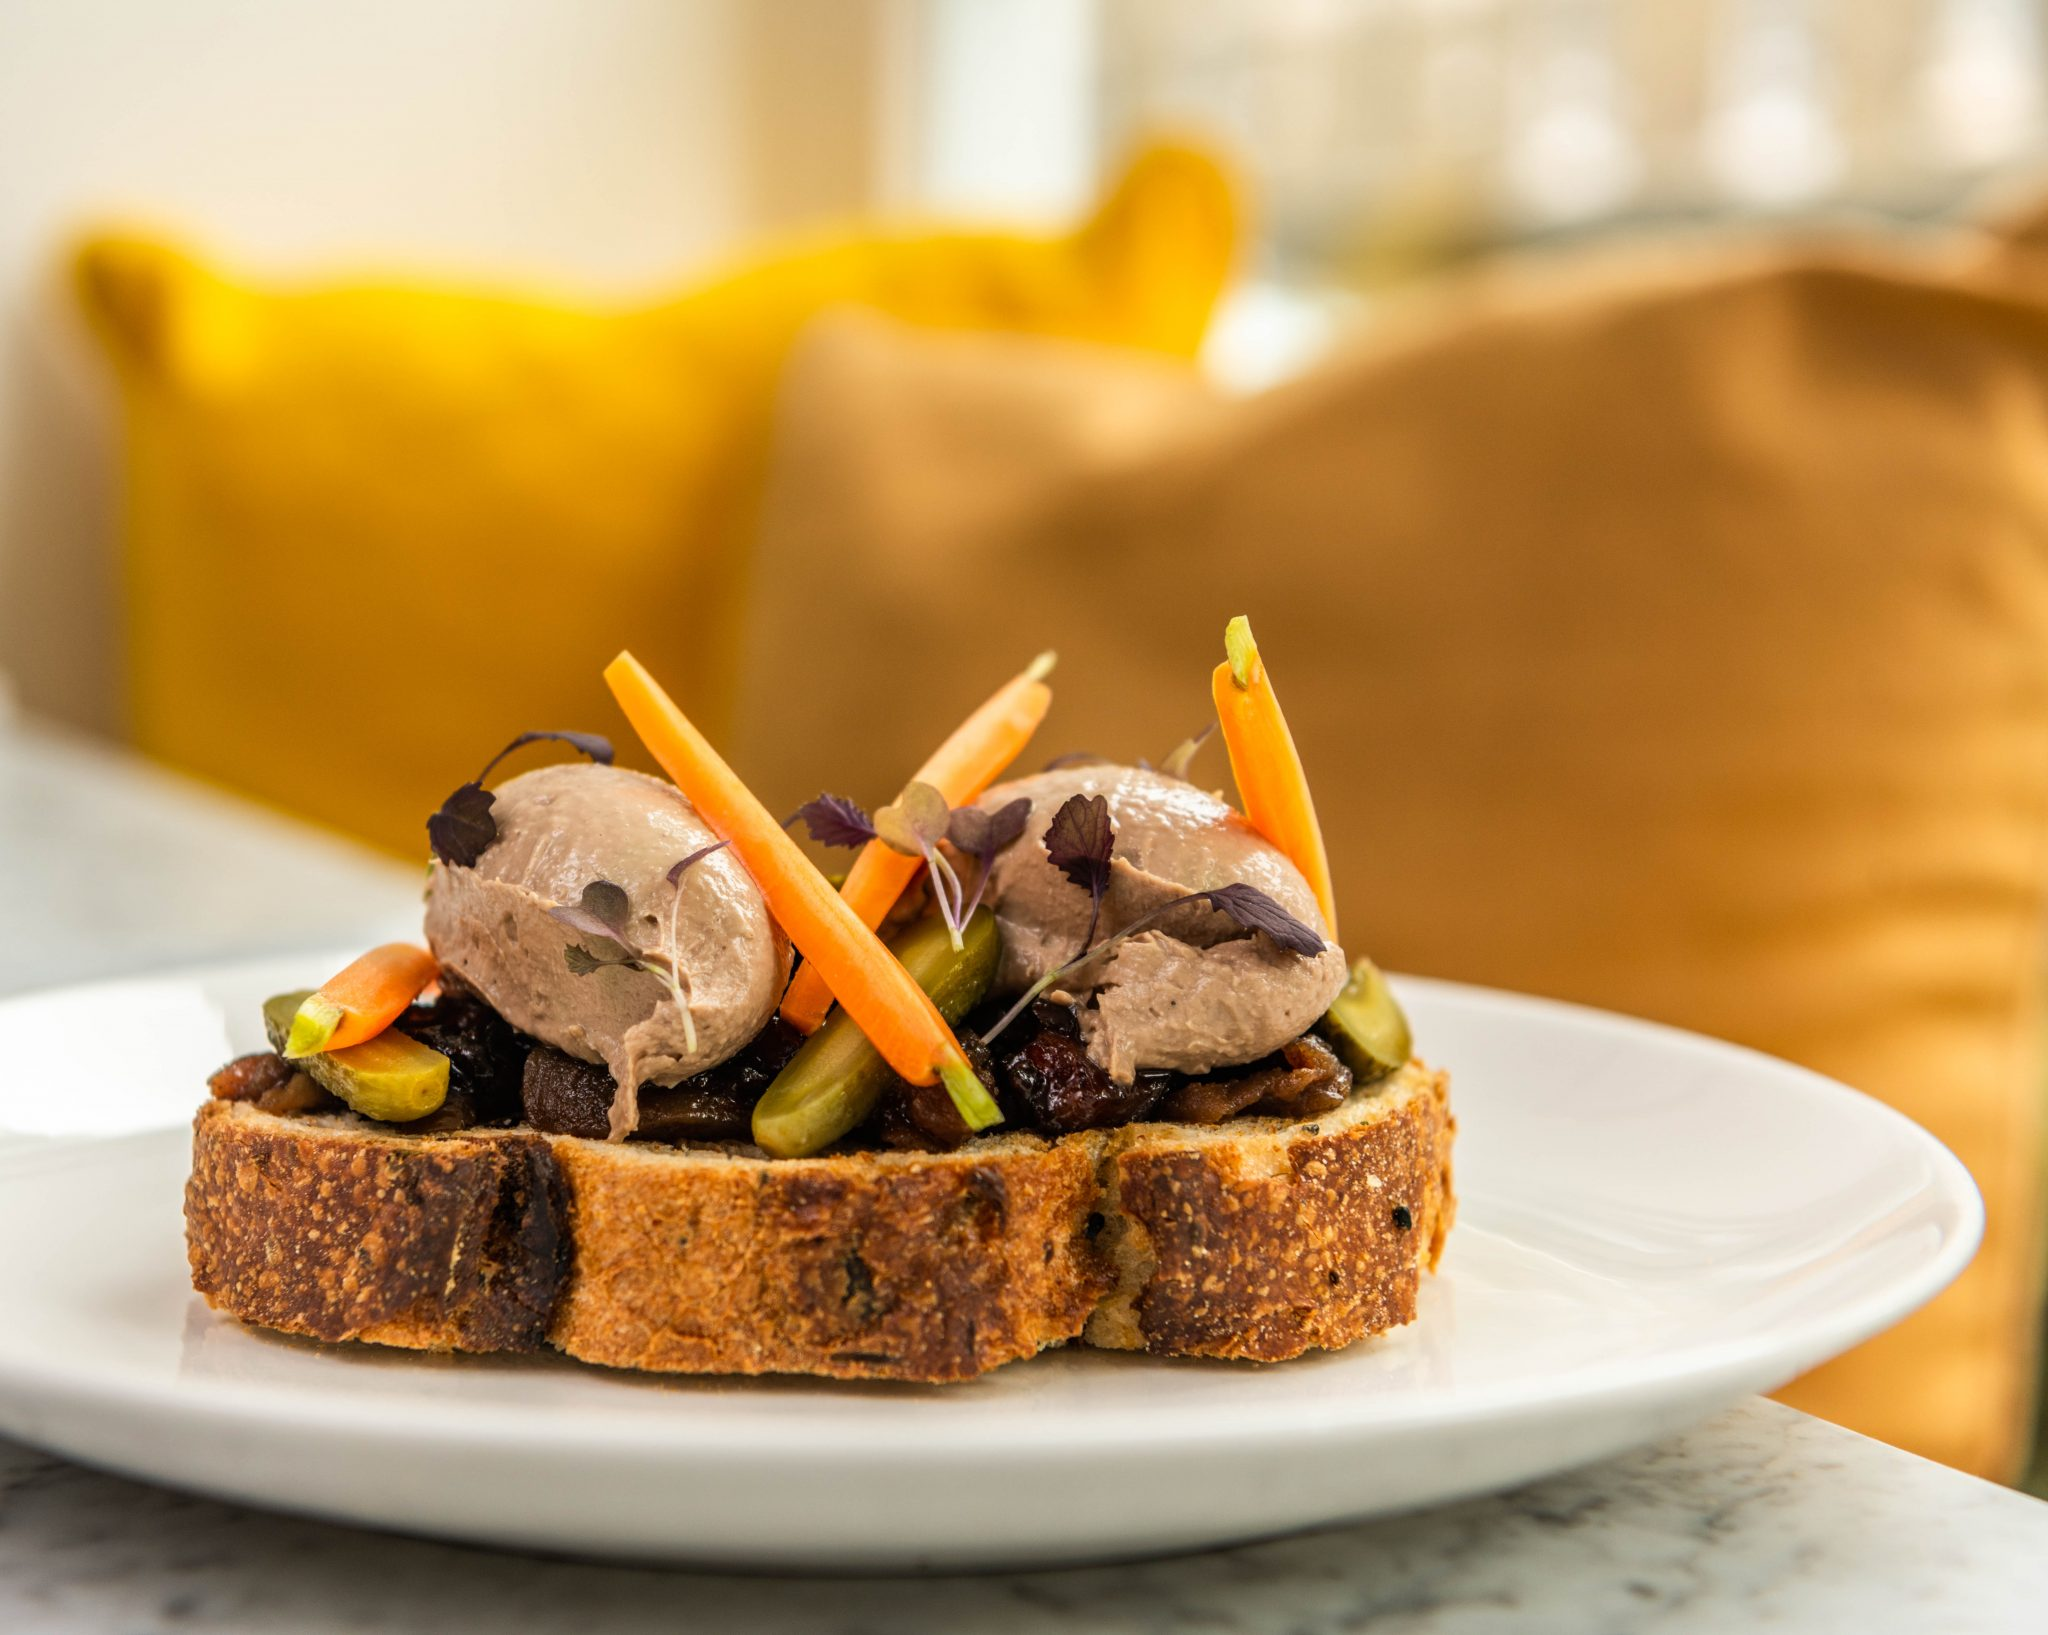 chicken liver parfait London Food and Drink Photography - LIV Restaurant Sloane Square | Photo: Nic Crilly-Hargrave